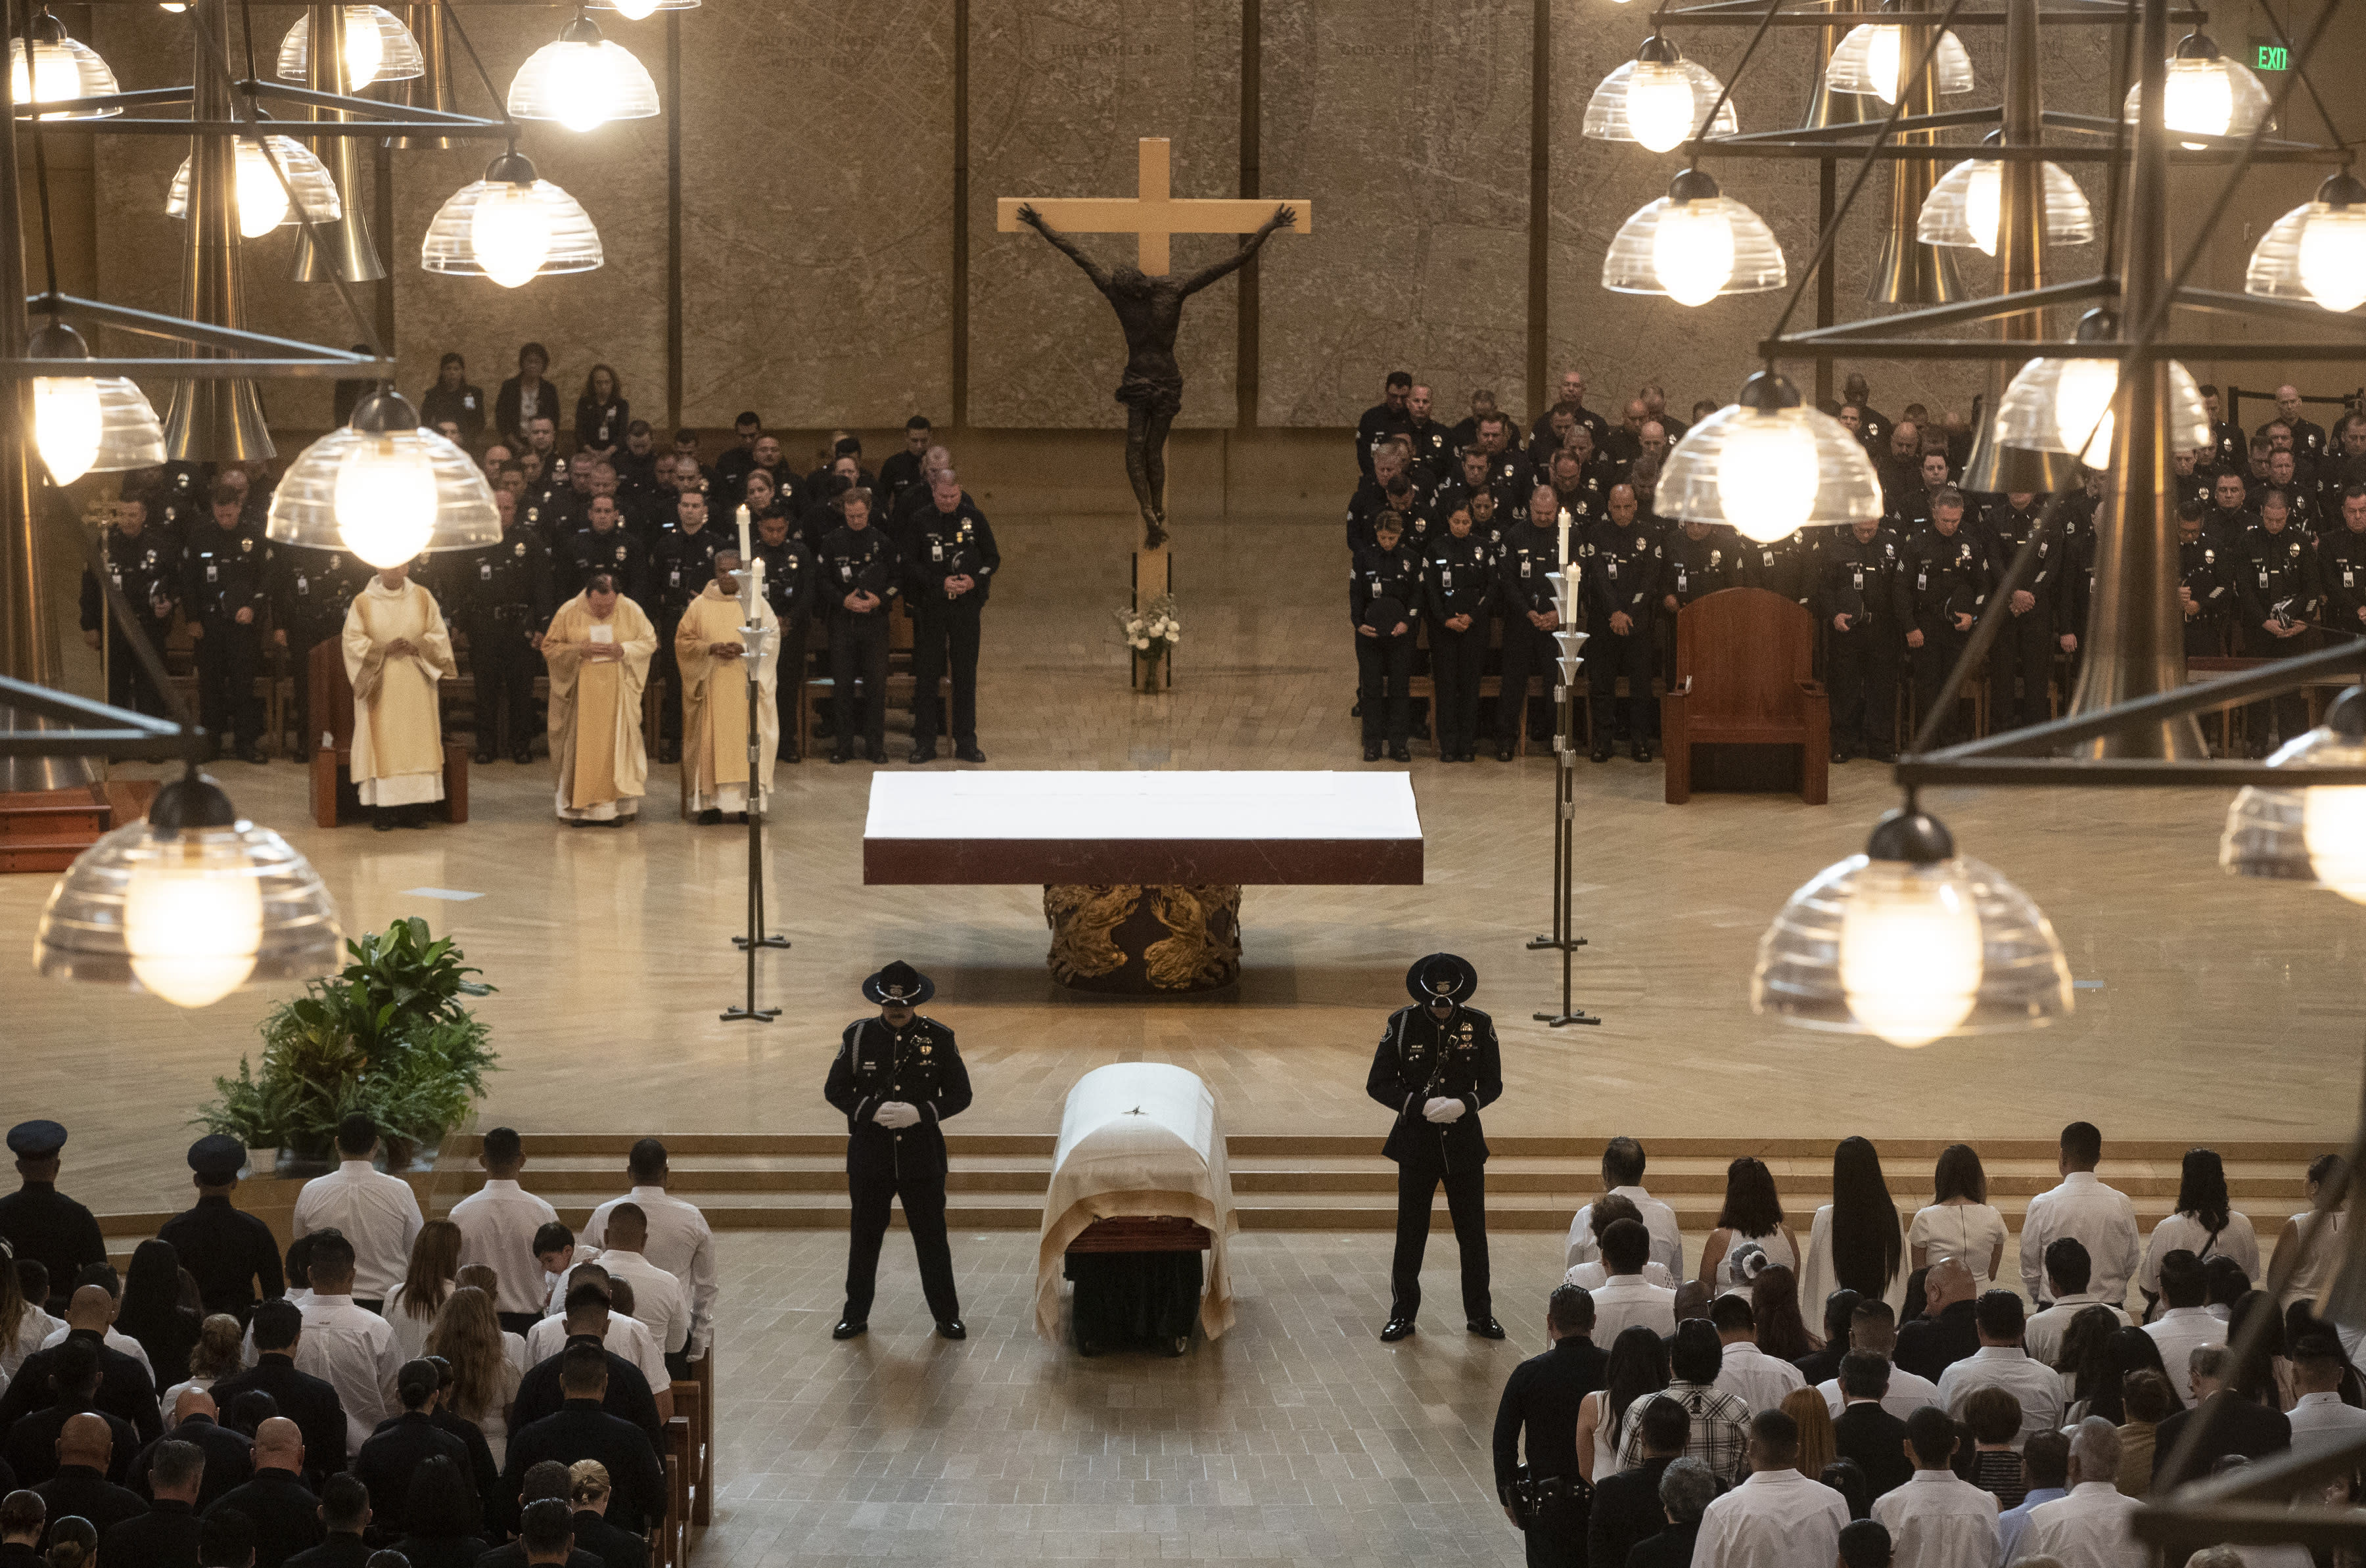 Honor guards flank Juan Diaz's casket during funeral mass for the slain LAPD officer at the Cathedral of Our Lady of the Angels in Los Angeles, Calif., on Monday, Aug. 12, 2019. (Brian van der Brug/Los Angeles Times via AP, Pool)